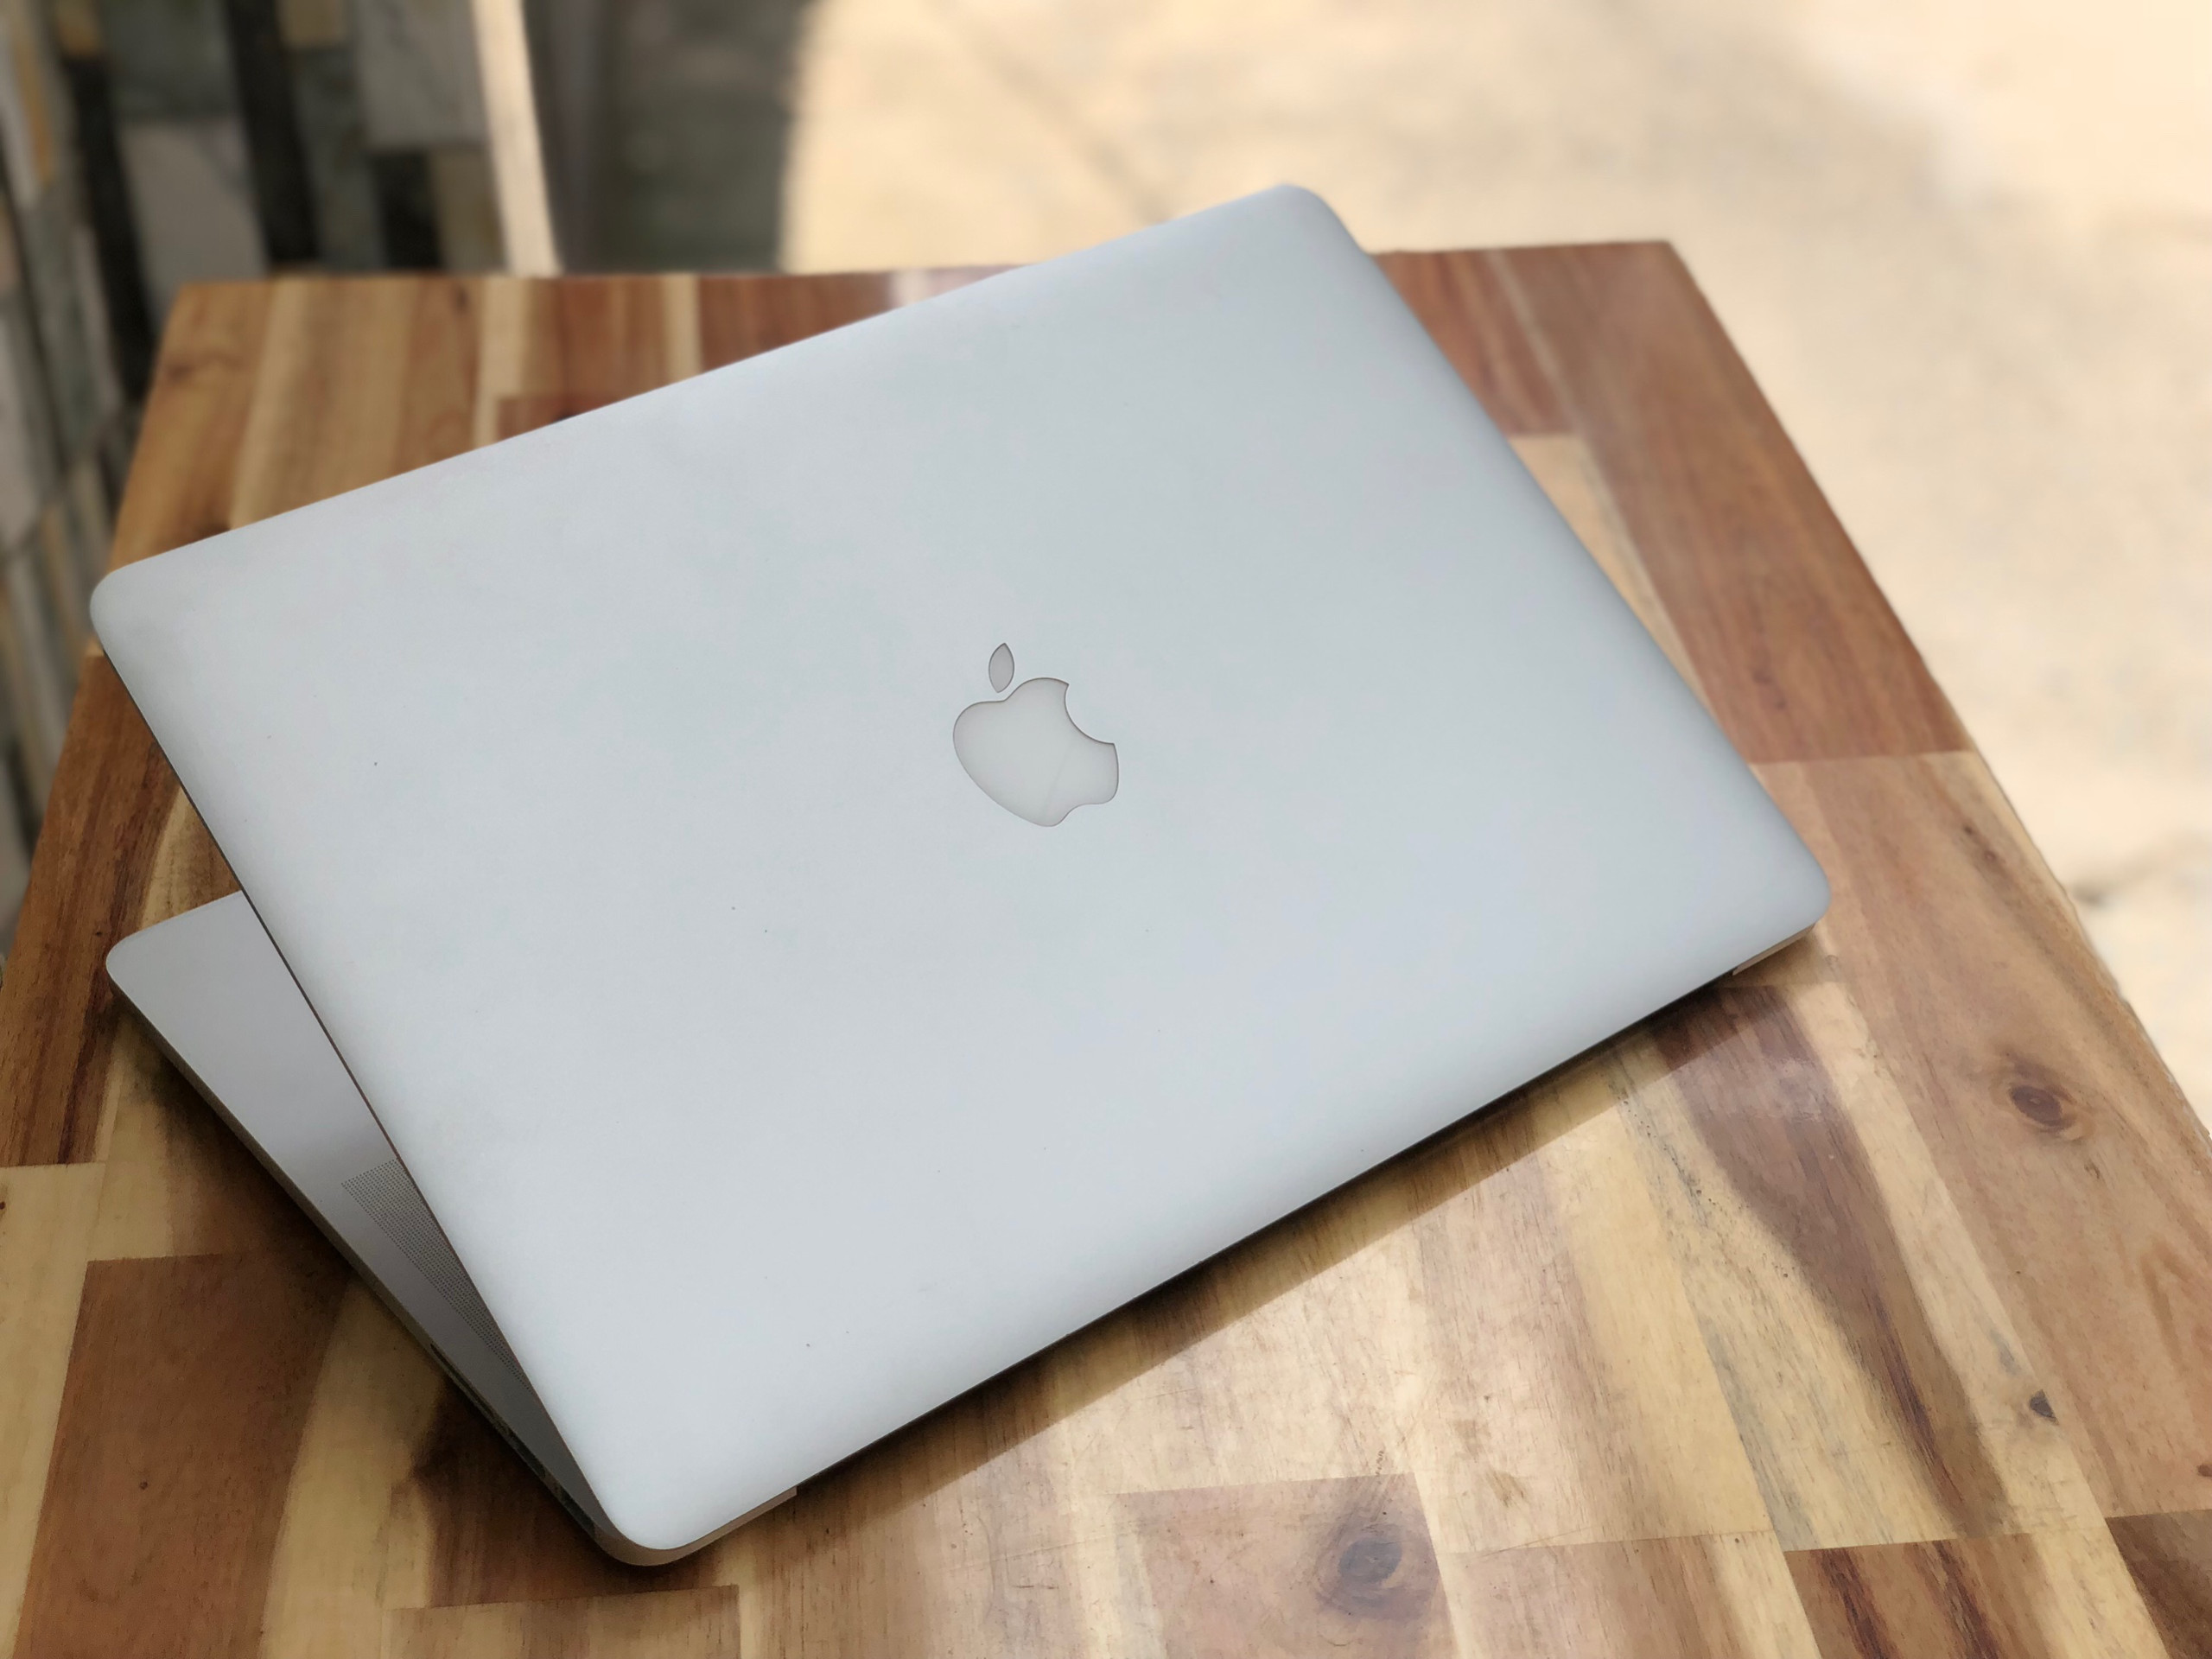 Macbook Pro Retina ME293/ Core i7/ Ram 8G/ SSD/ 15in/ MAC OS/ Retina/ Giá rẻ